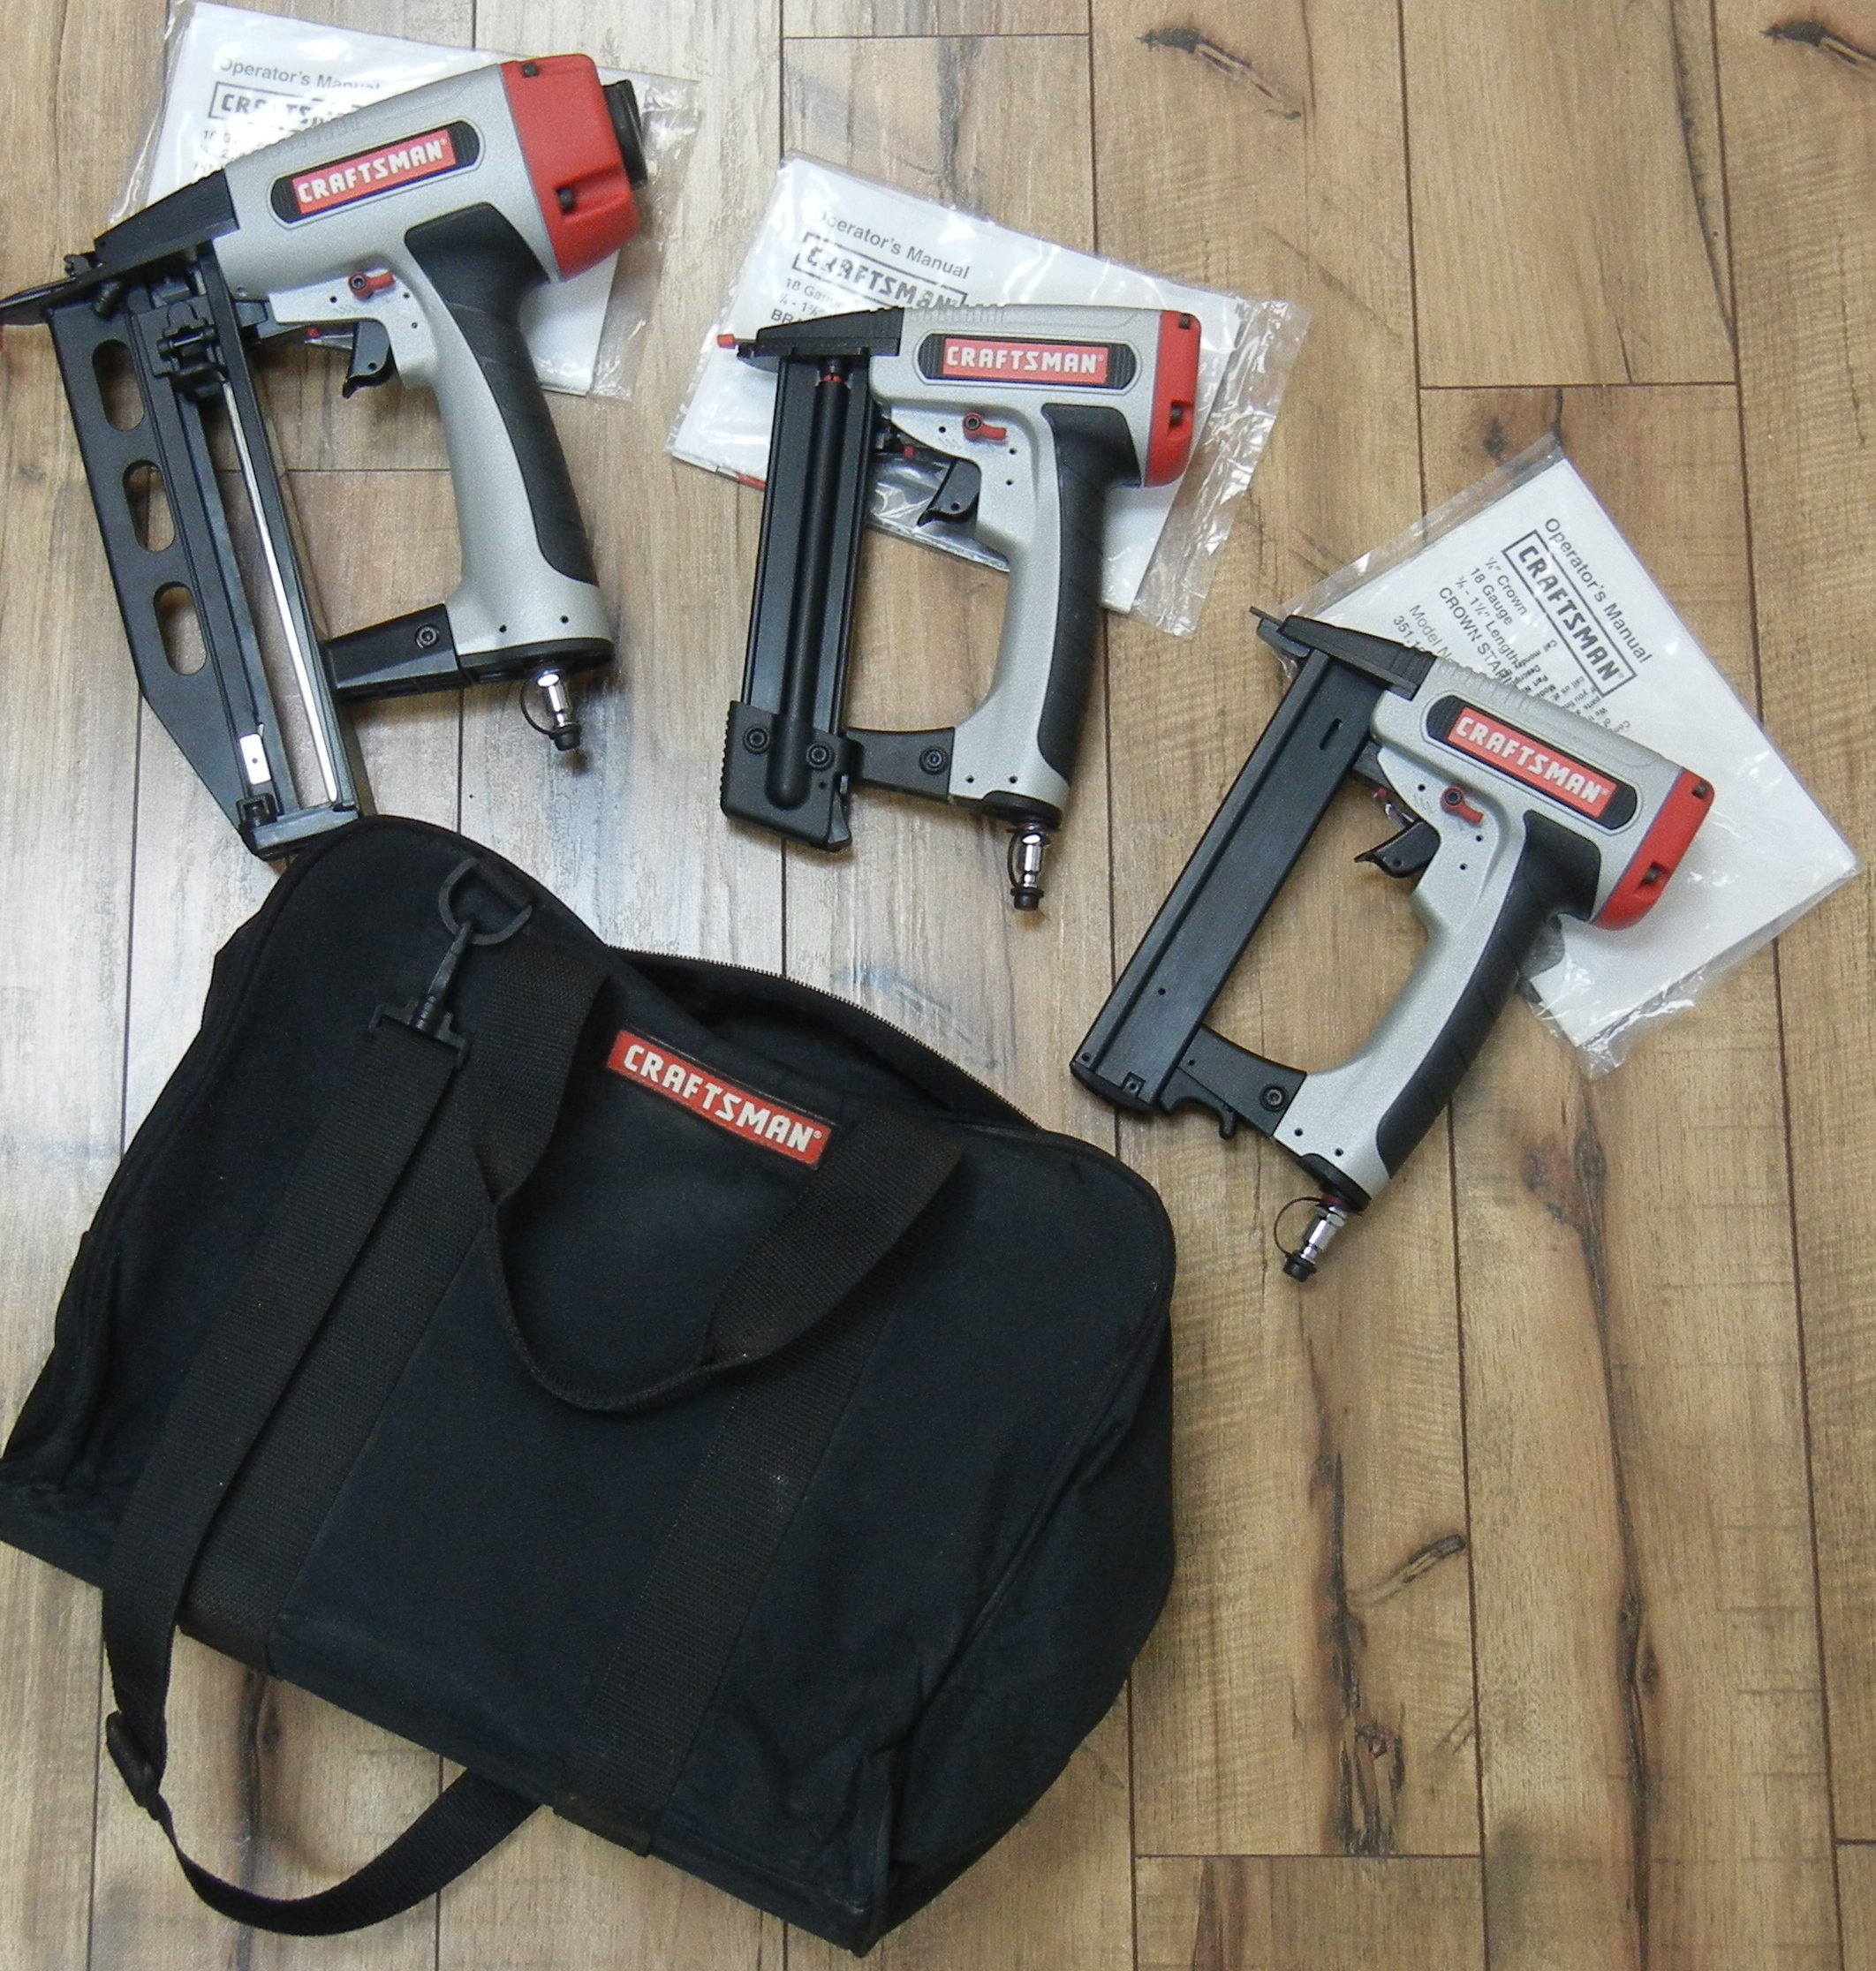 CRAFTSMAN CROWN STAPLER, BRAD NAILER AND FINISH NAILER SET